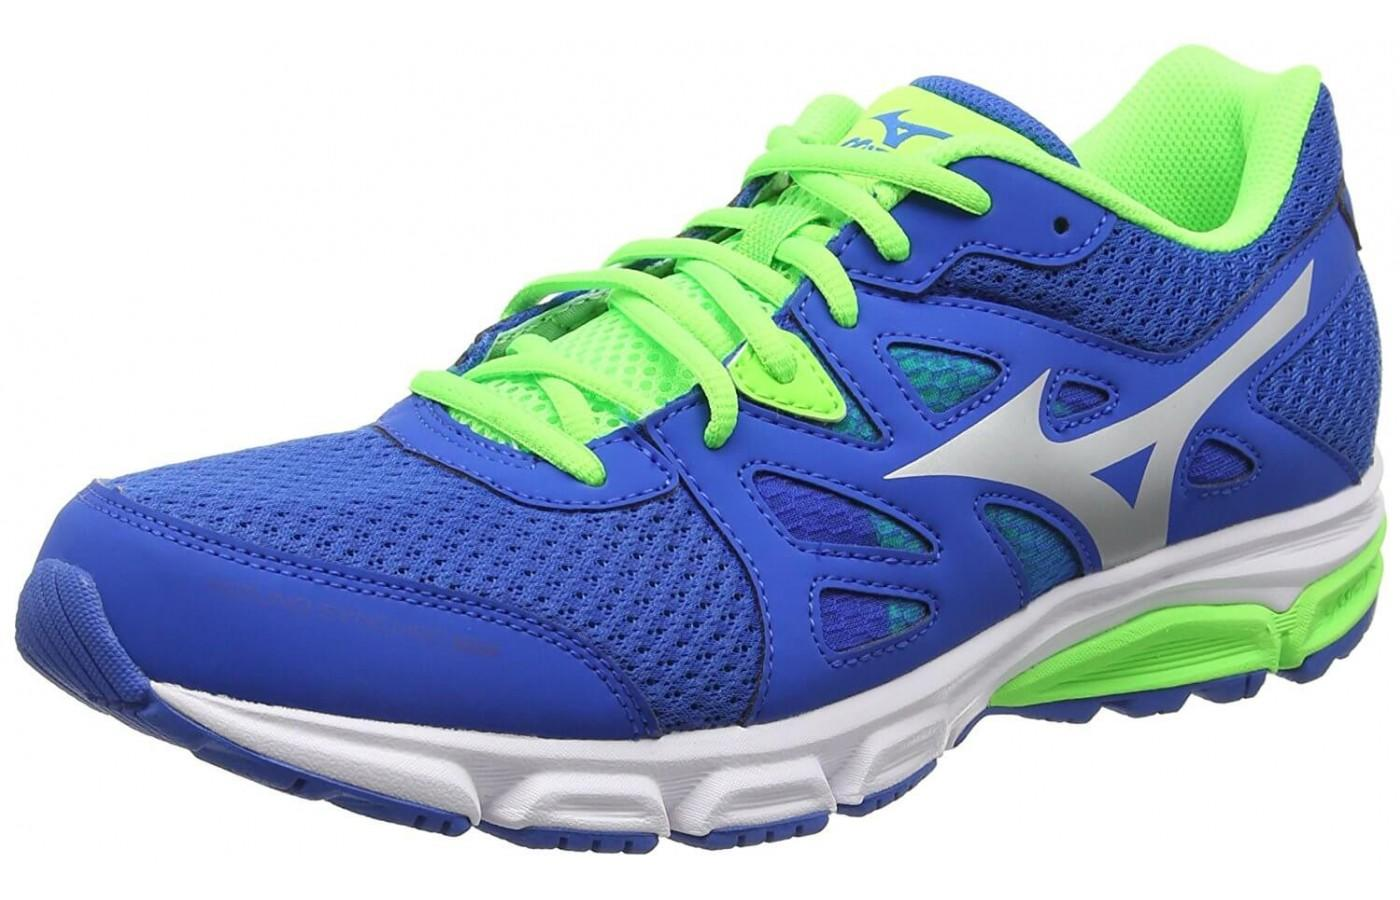 Mizuno Synchro MD has a distinctive look